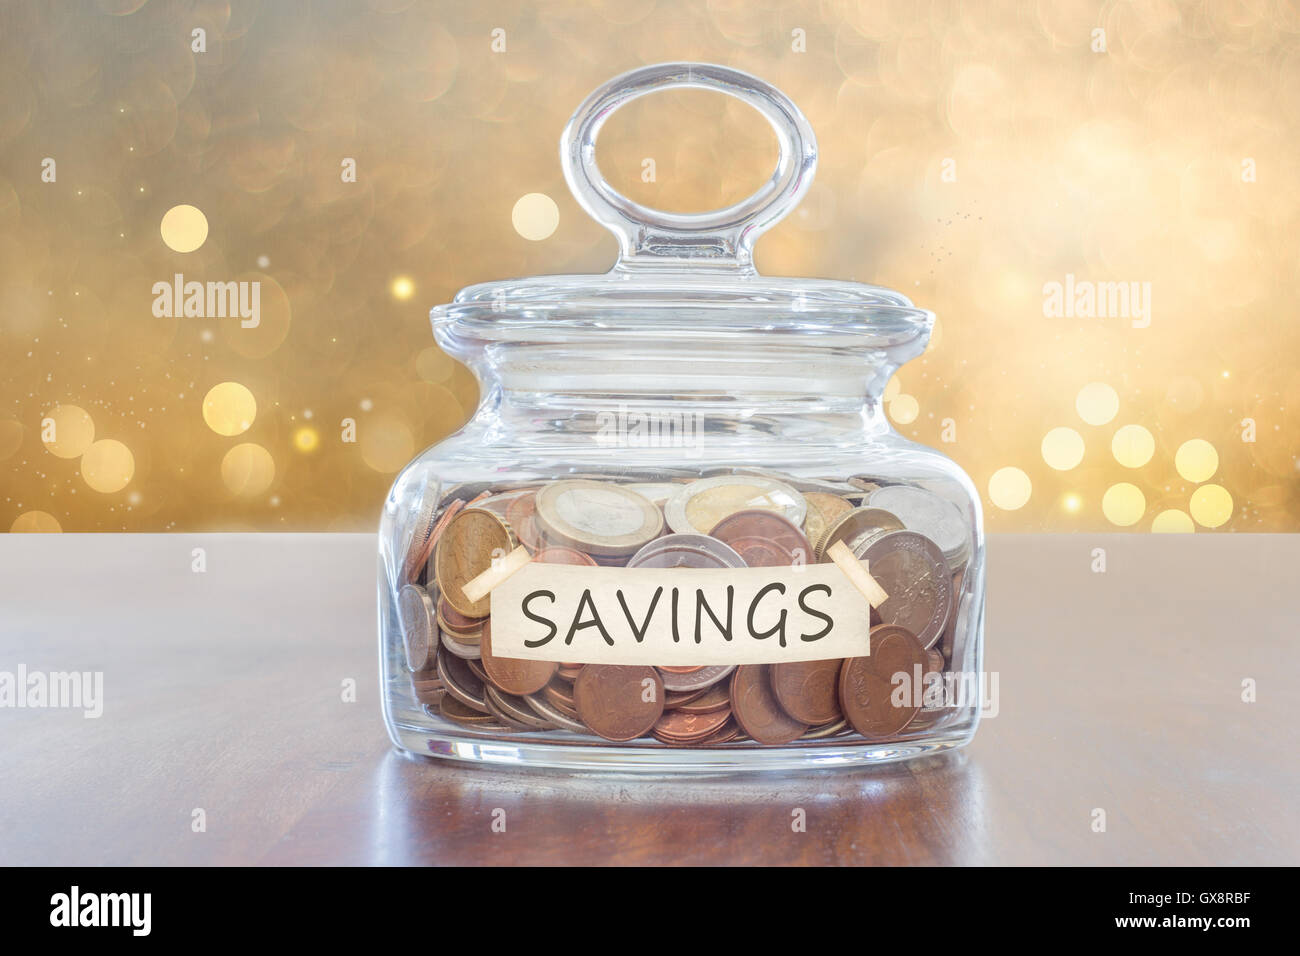 saving for future - Stock Image